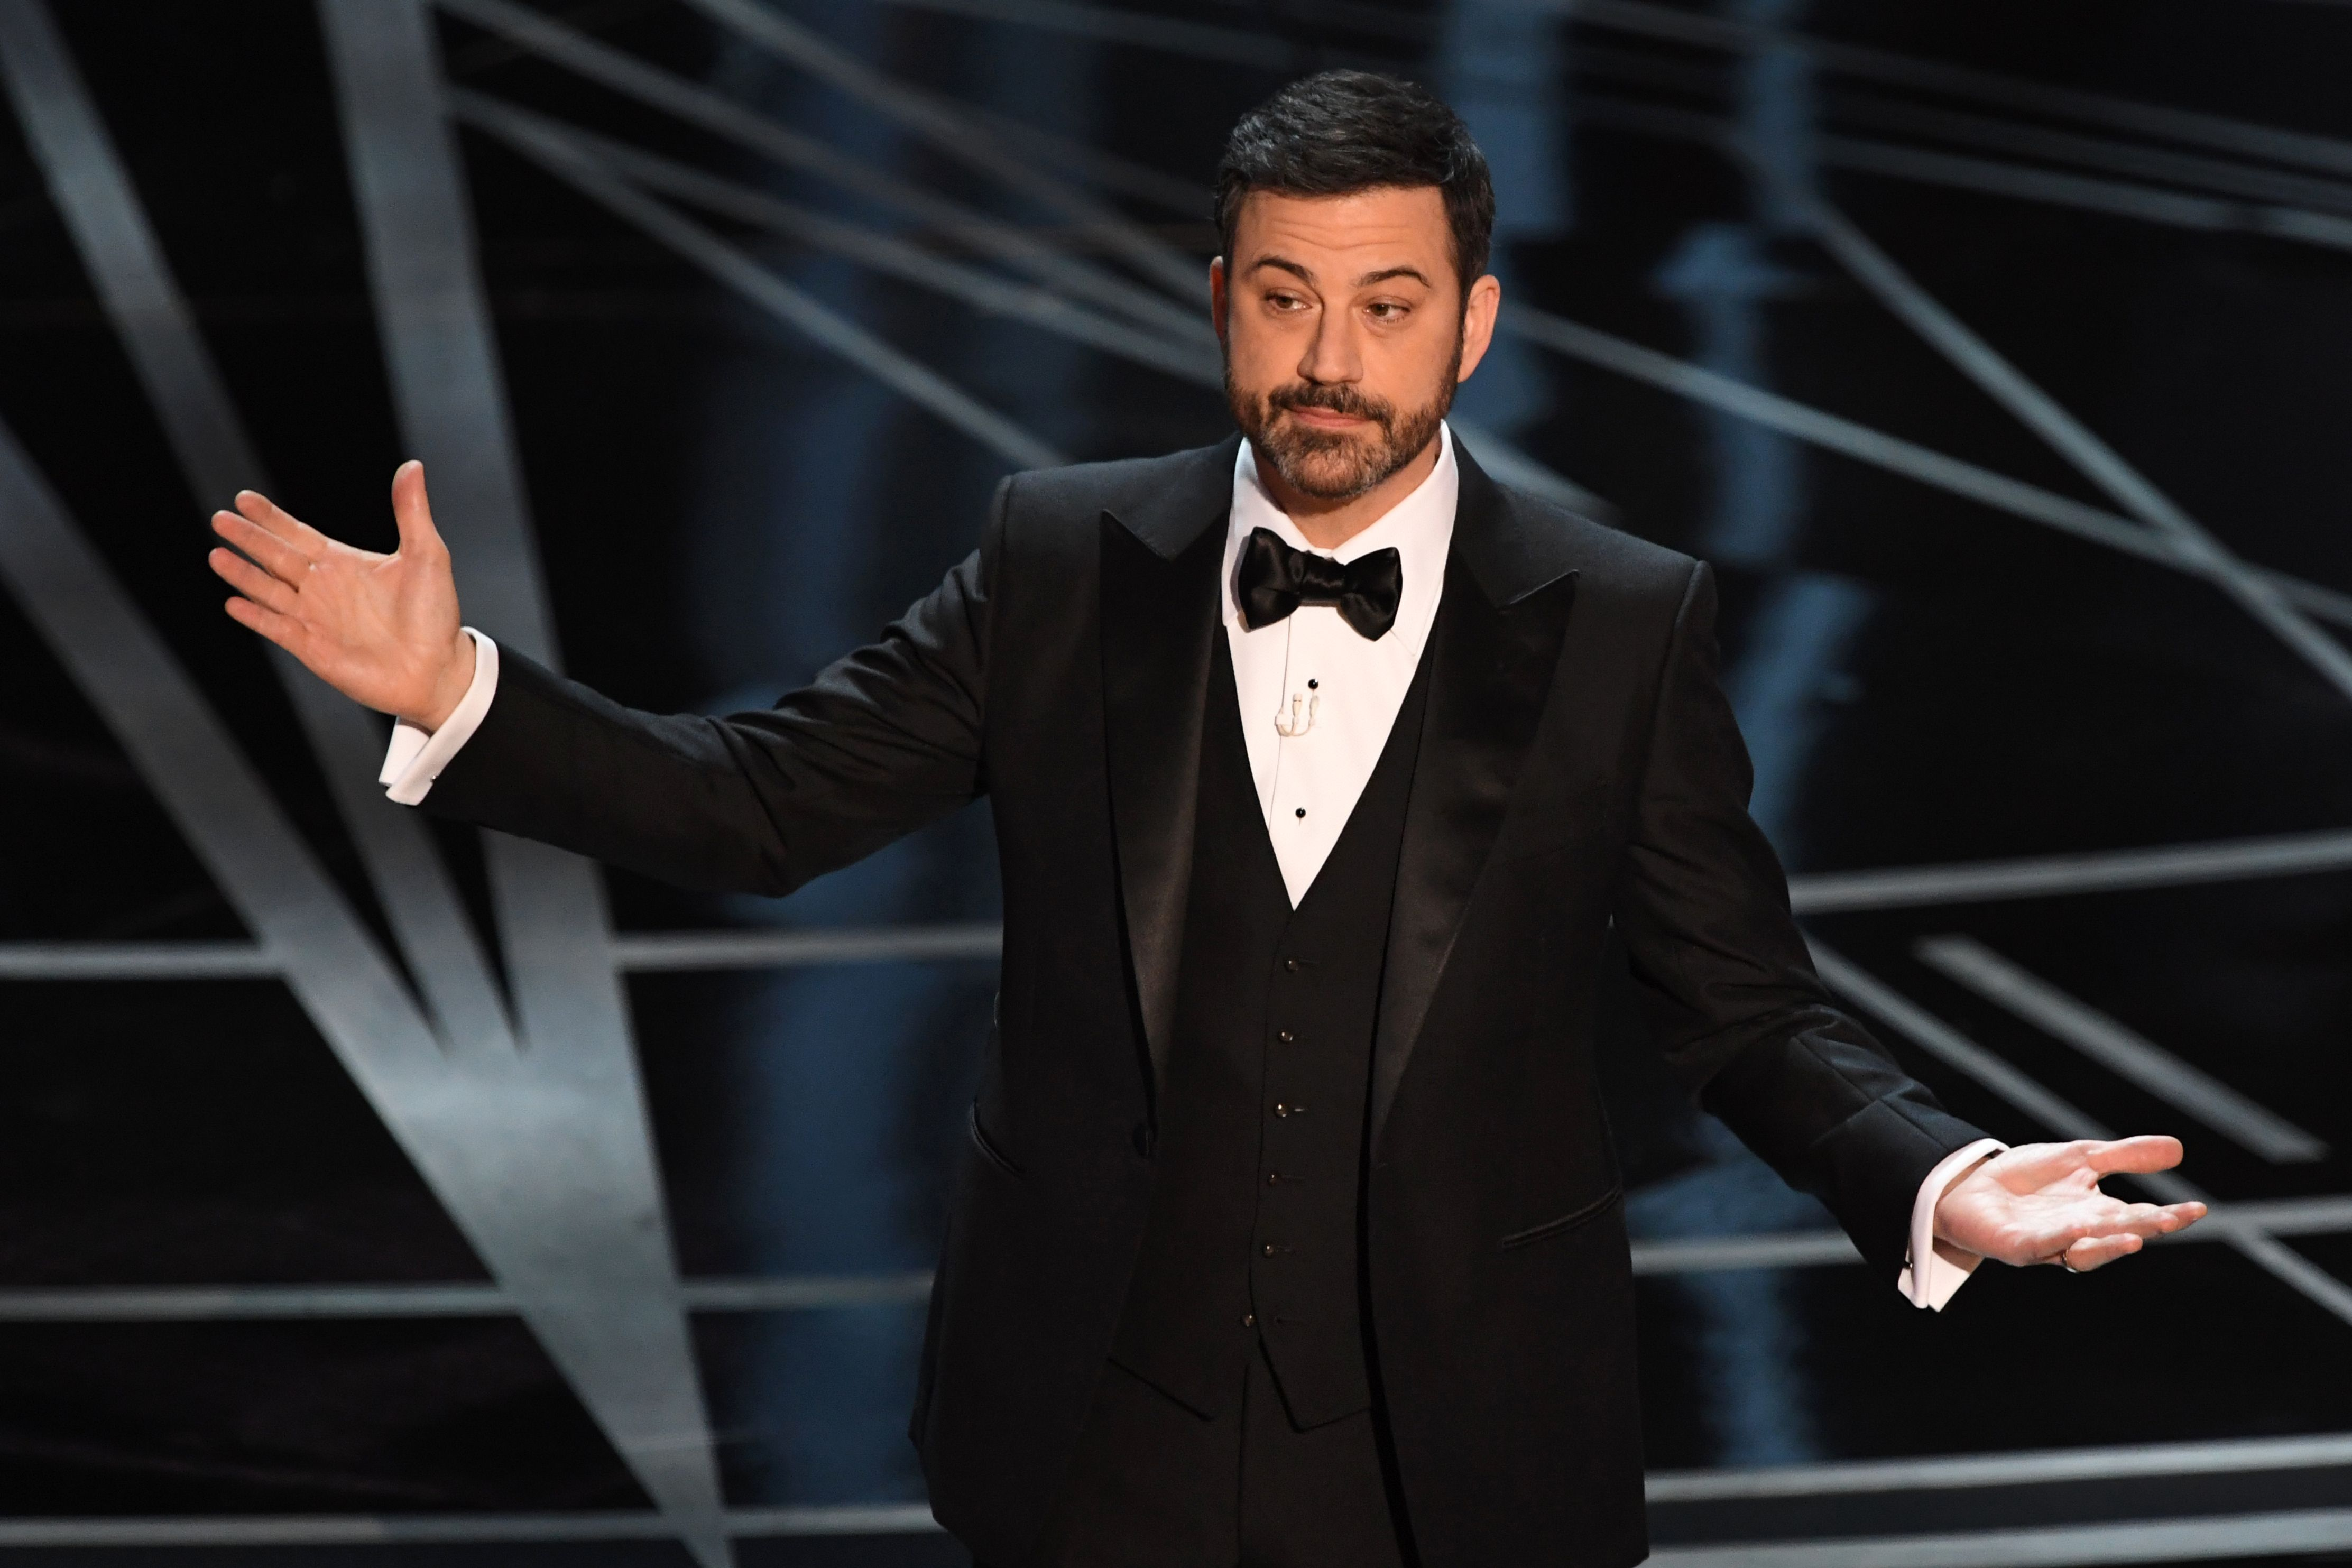 Jimmy Kimmel makes a good point about unity during his Oscar monologue (and then tries to make nice with Matt Damon)